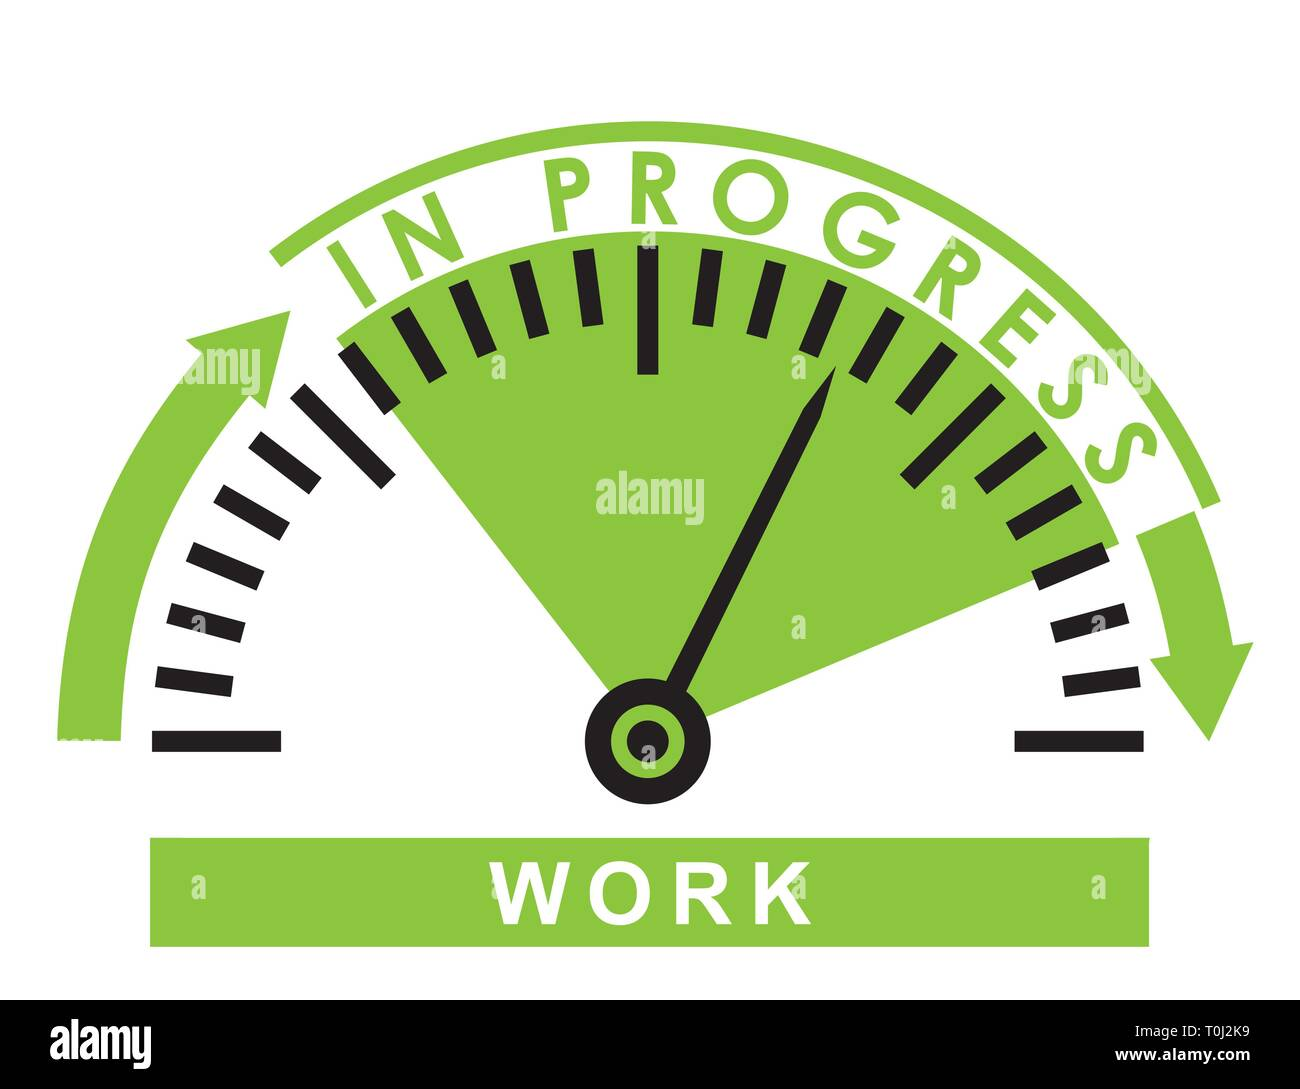 work in progress - monitoring  scale -  illustration template - Stock Vector